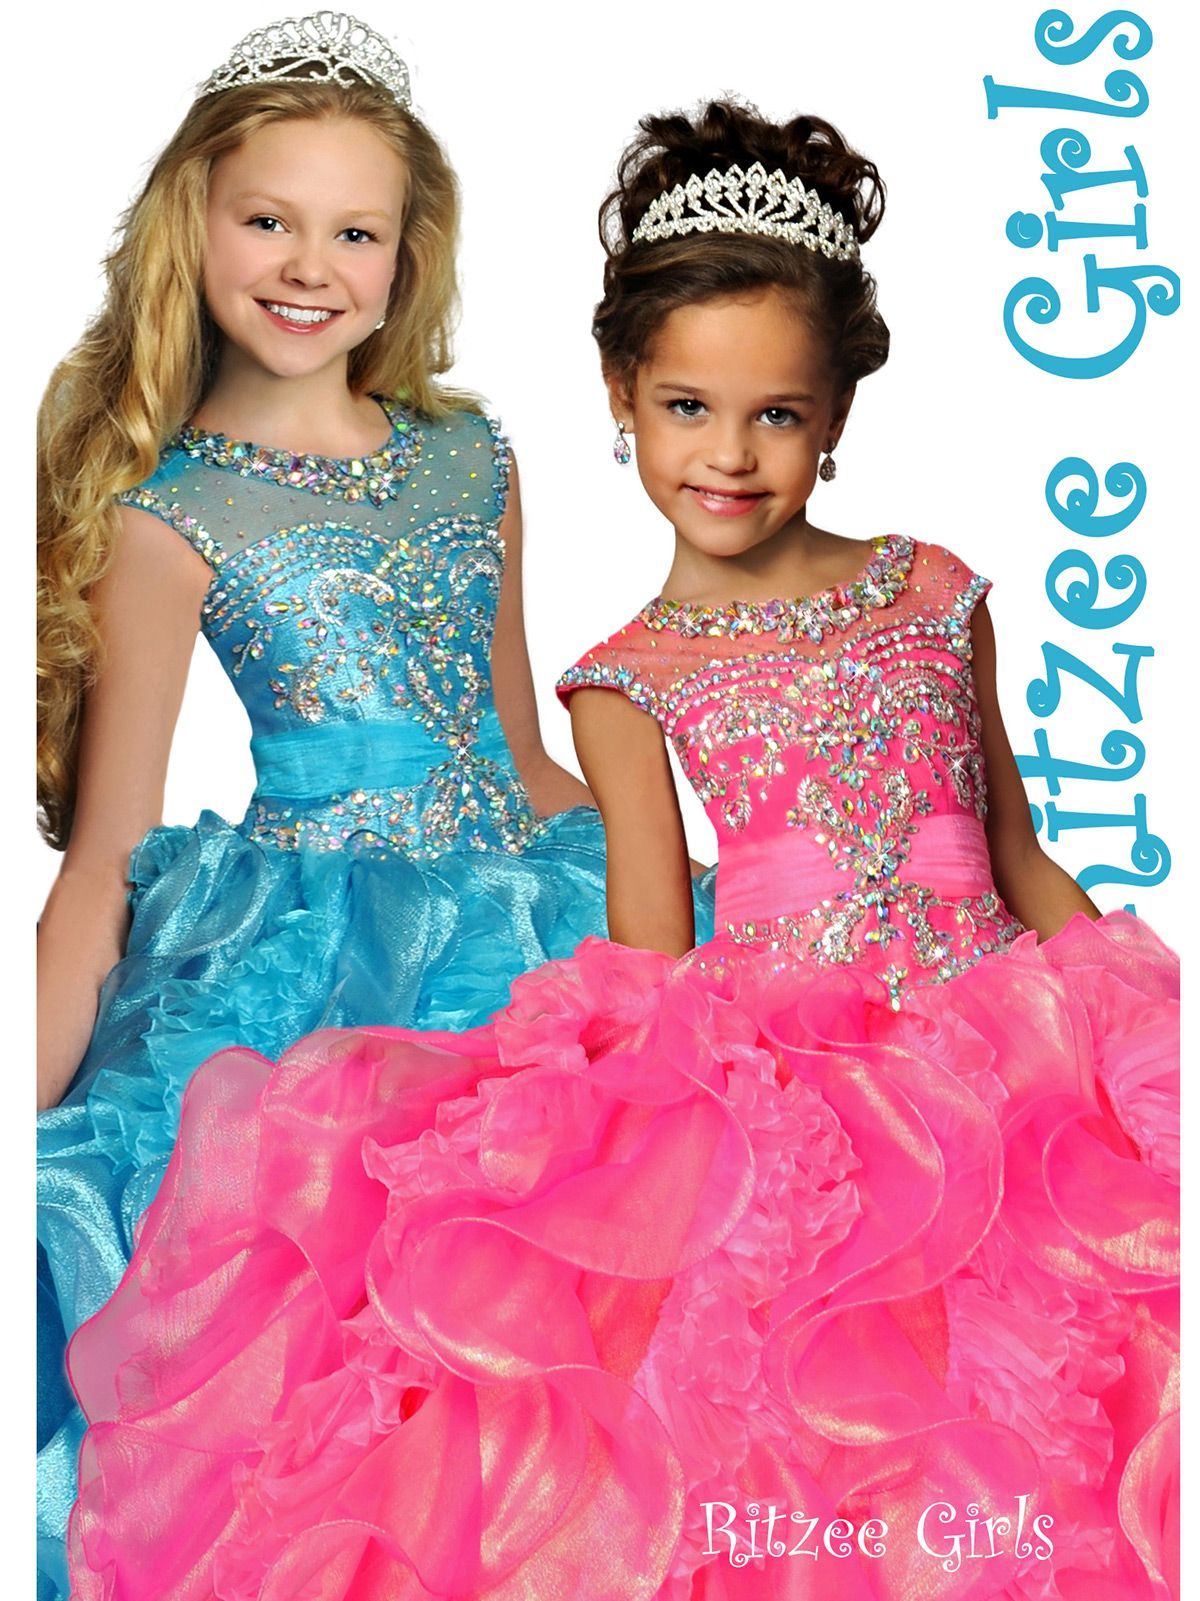 Adorable Ritzee Girls dress with a Sabrina neckline style. Sheer and  rhinestone embellishment.